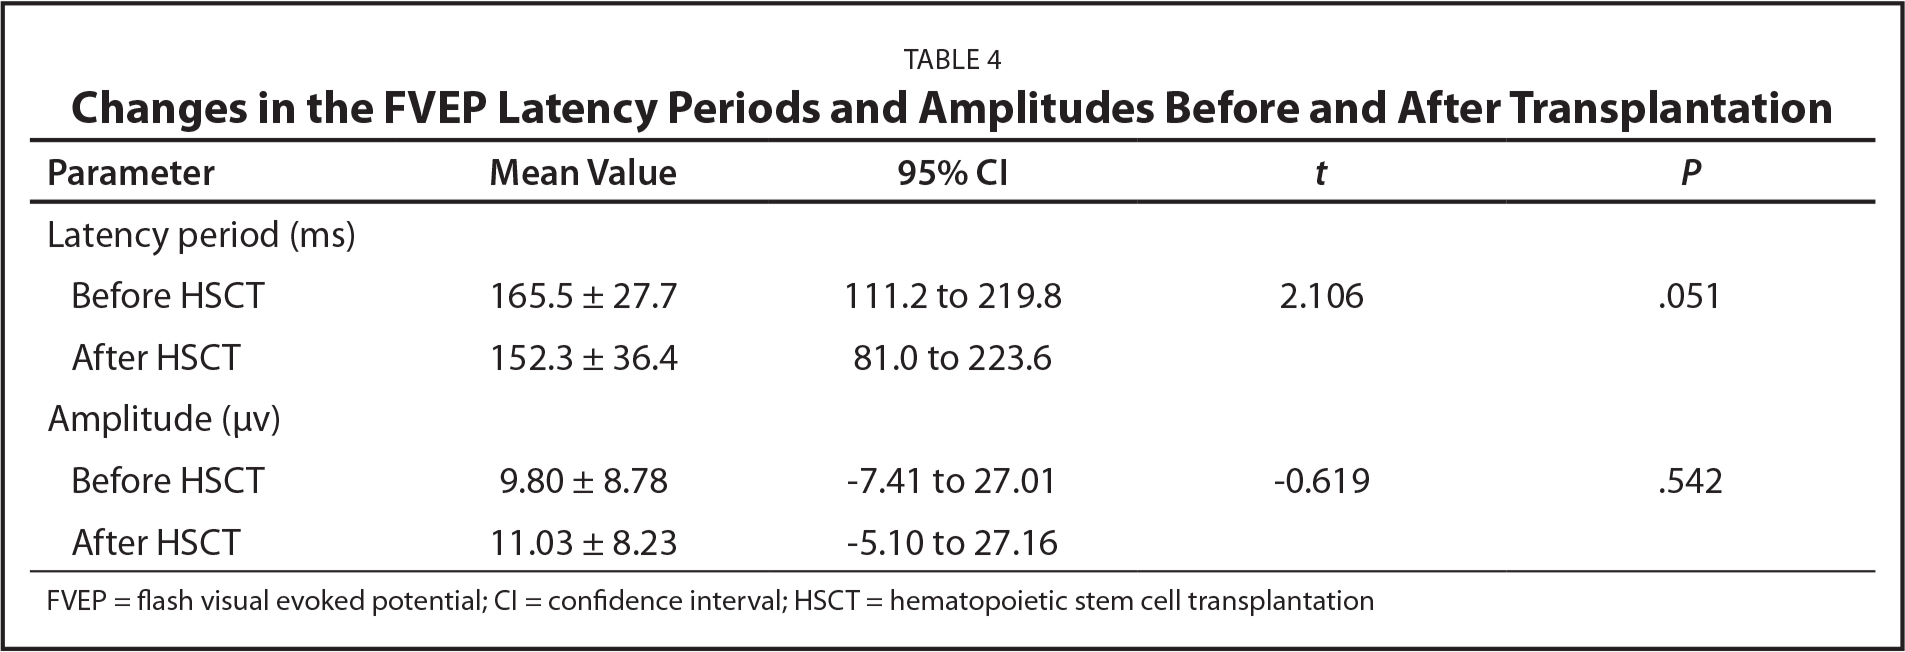 Changes in the FVEP Latency Periods and Amplitudes Before and After Transplantation